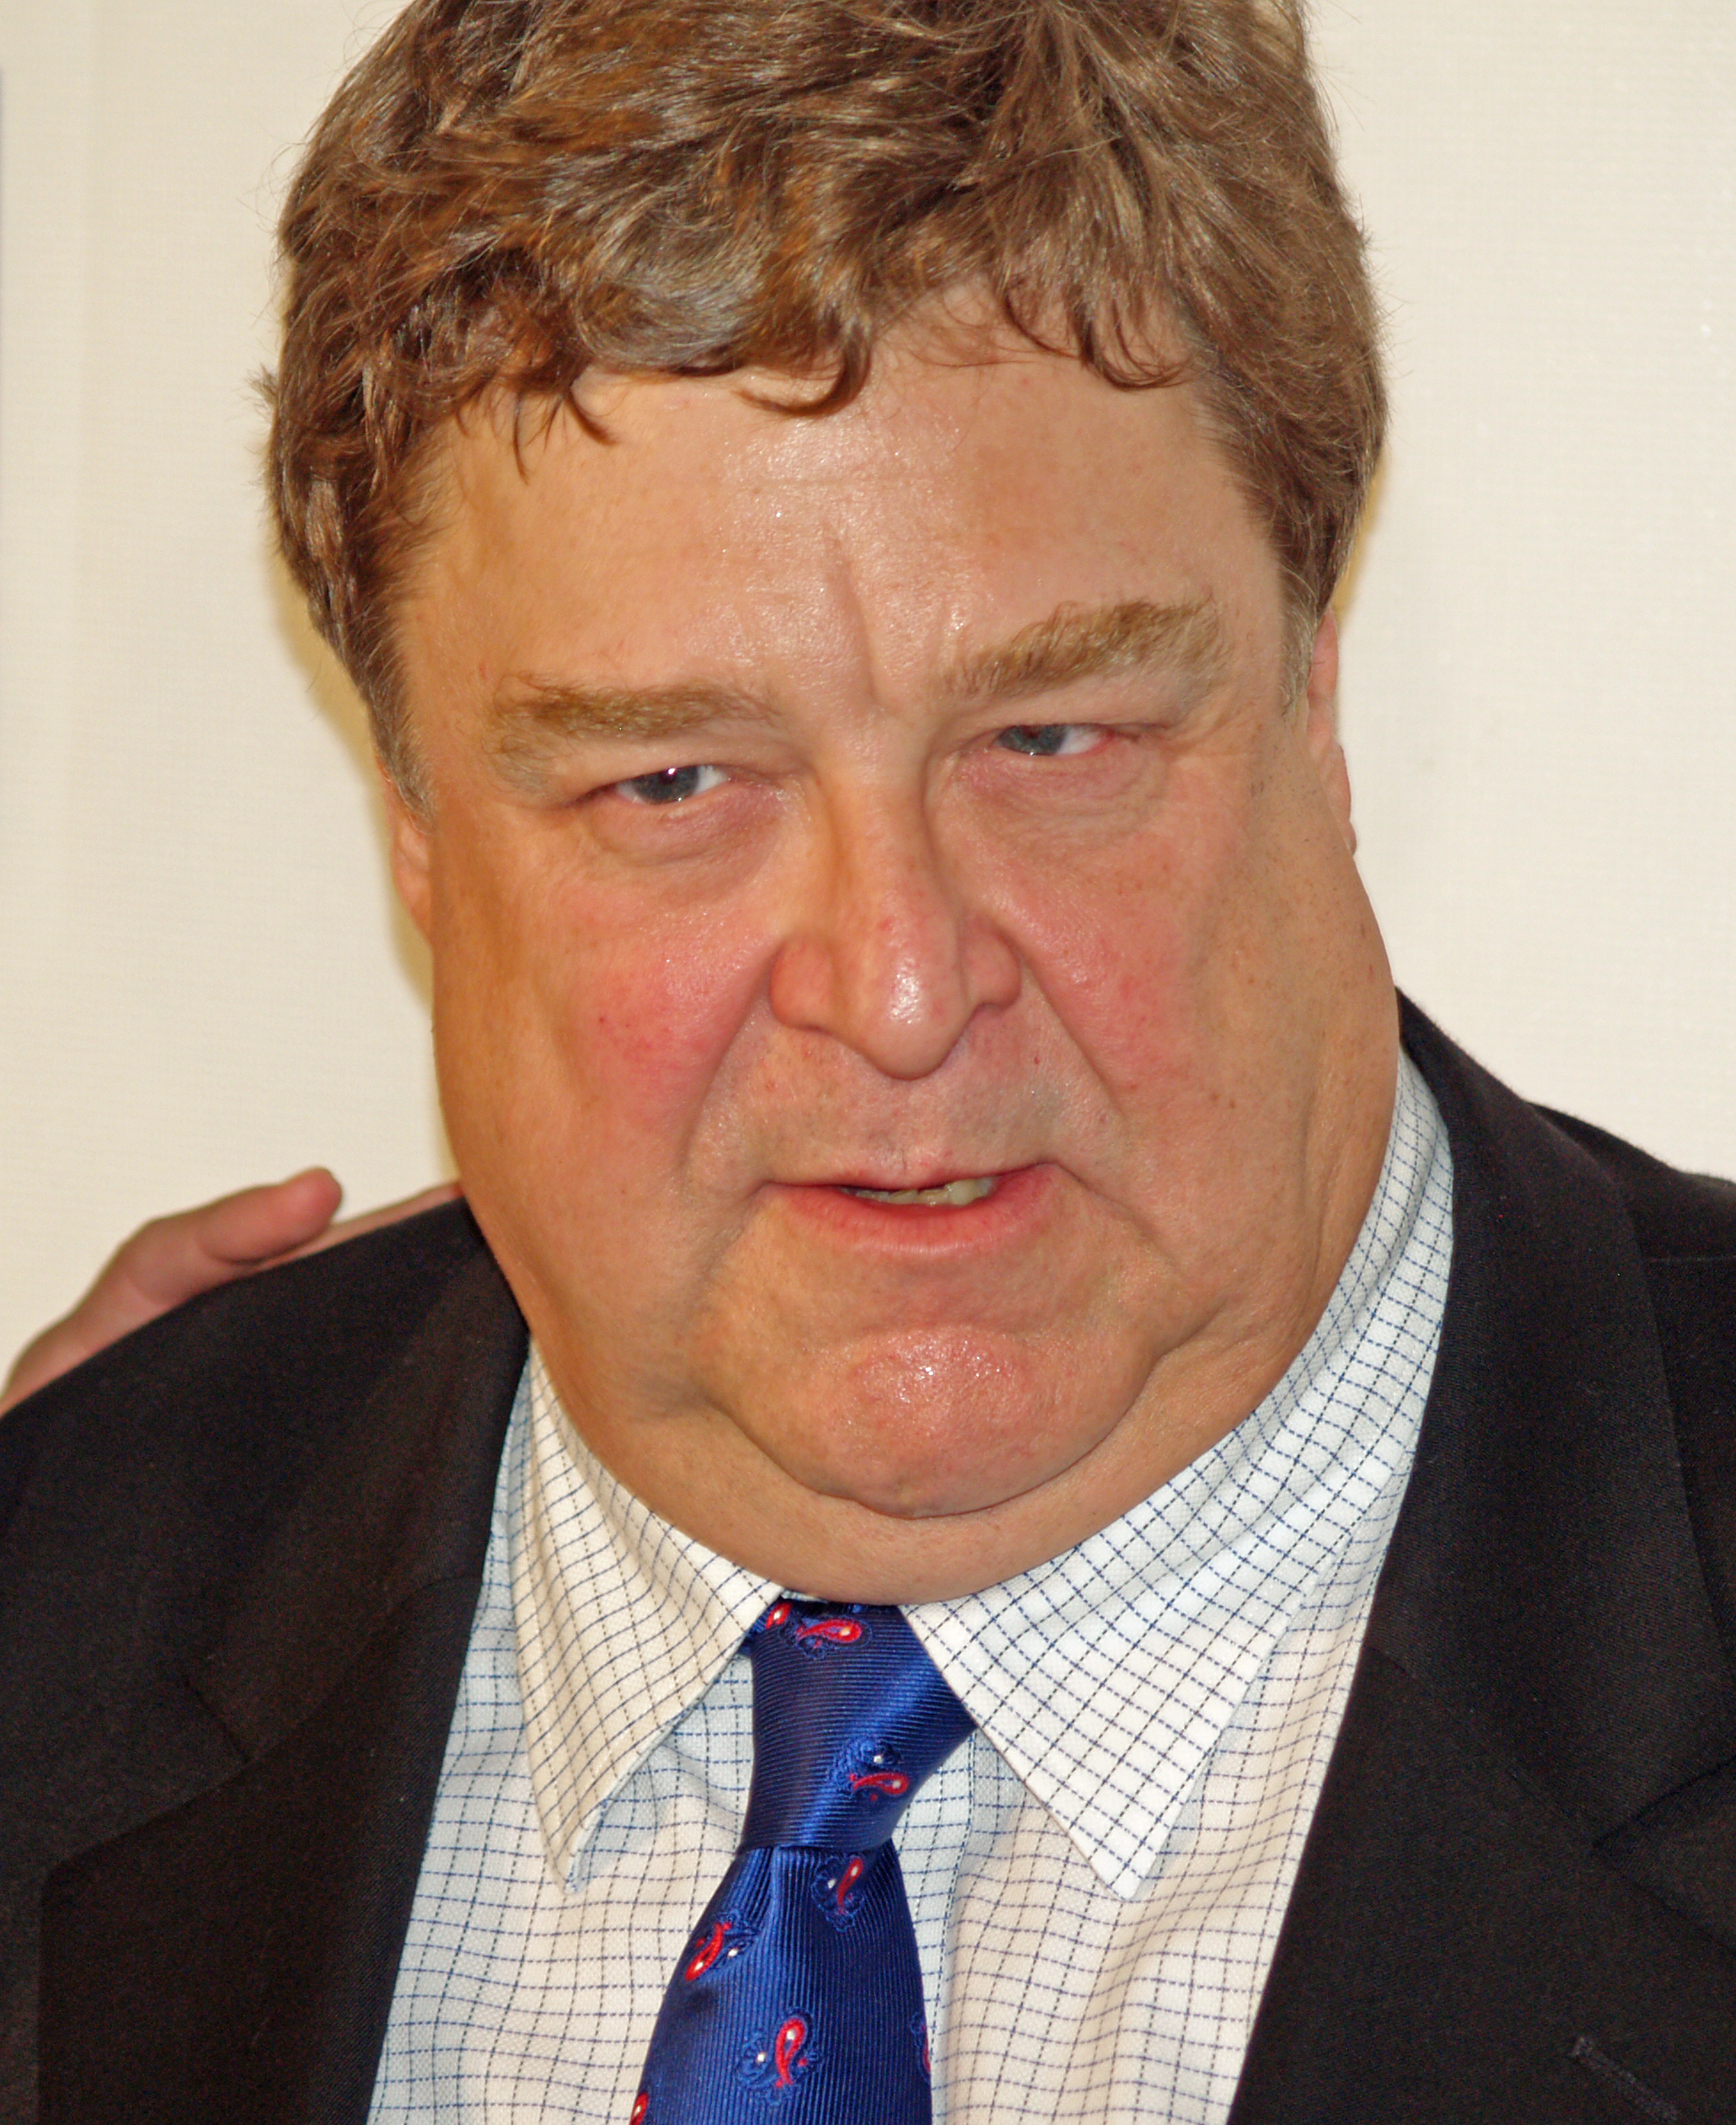 john-goodman-by-david-shankbone